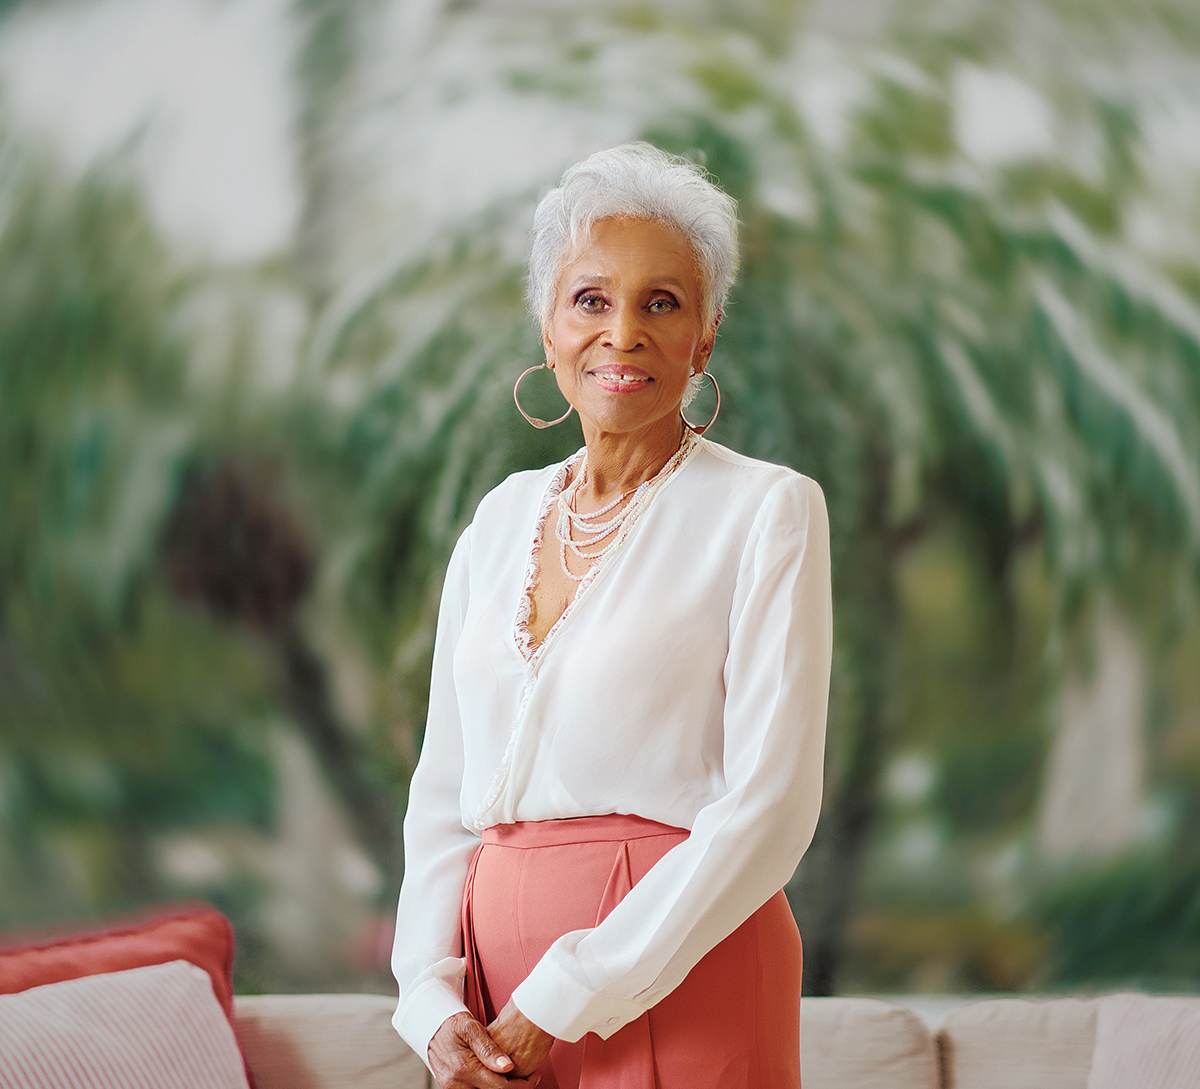 Dorothy Butler Gilliam in Sarasota for the Hear Me Roar Luncheon. Photo by Evan Sigmund.